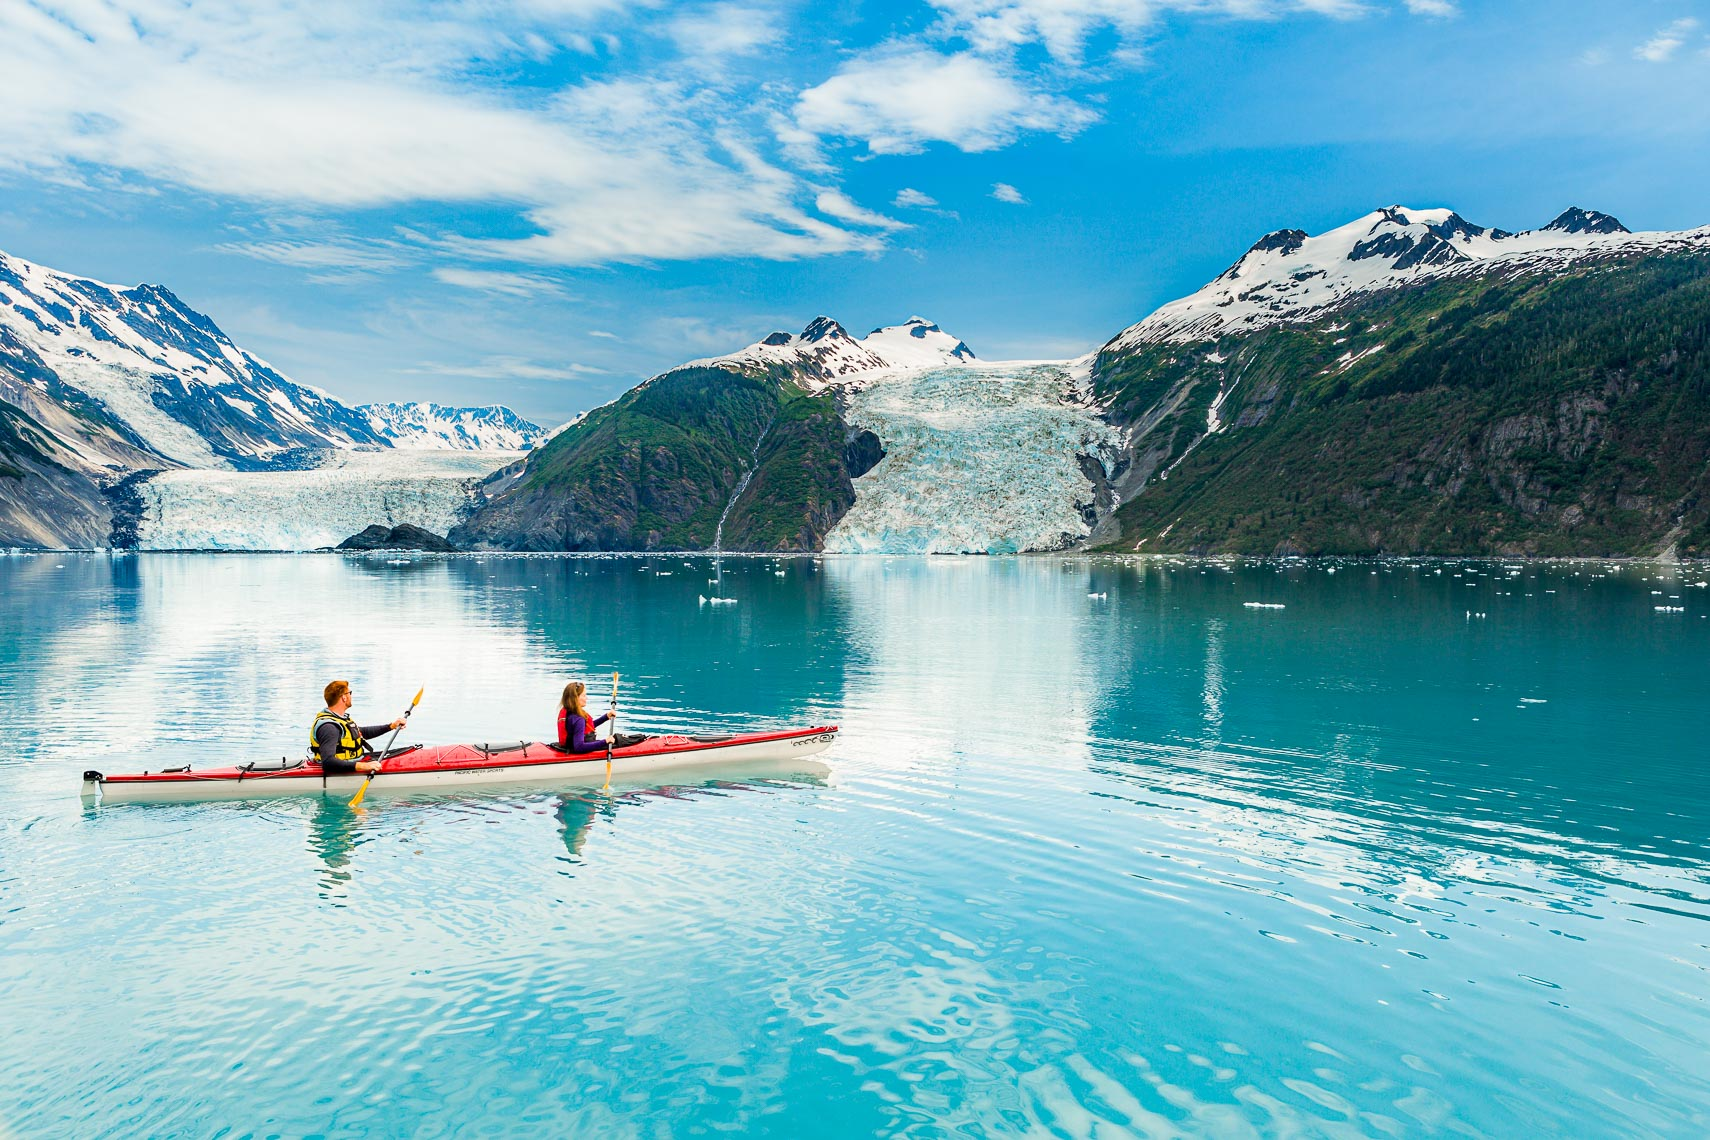 Alaska Travel Glaciers Sea Kayaking Tour | Michael DeYoung